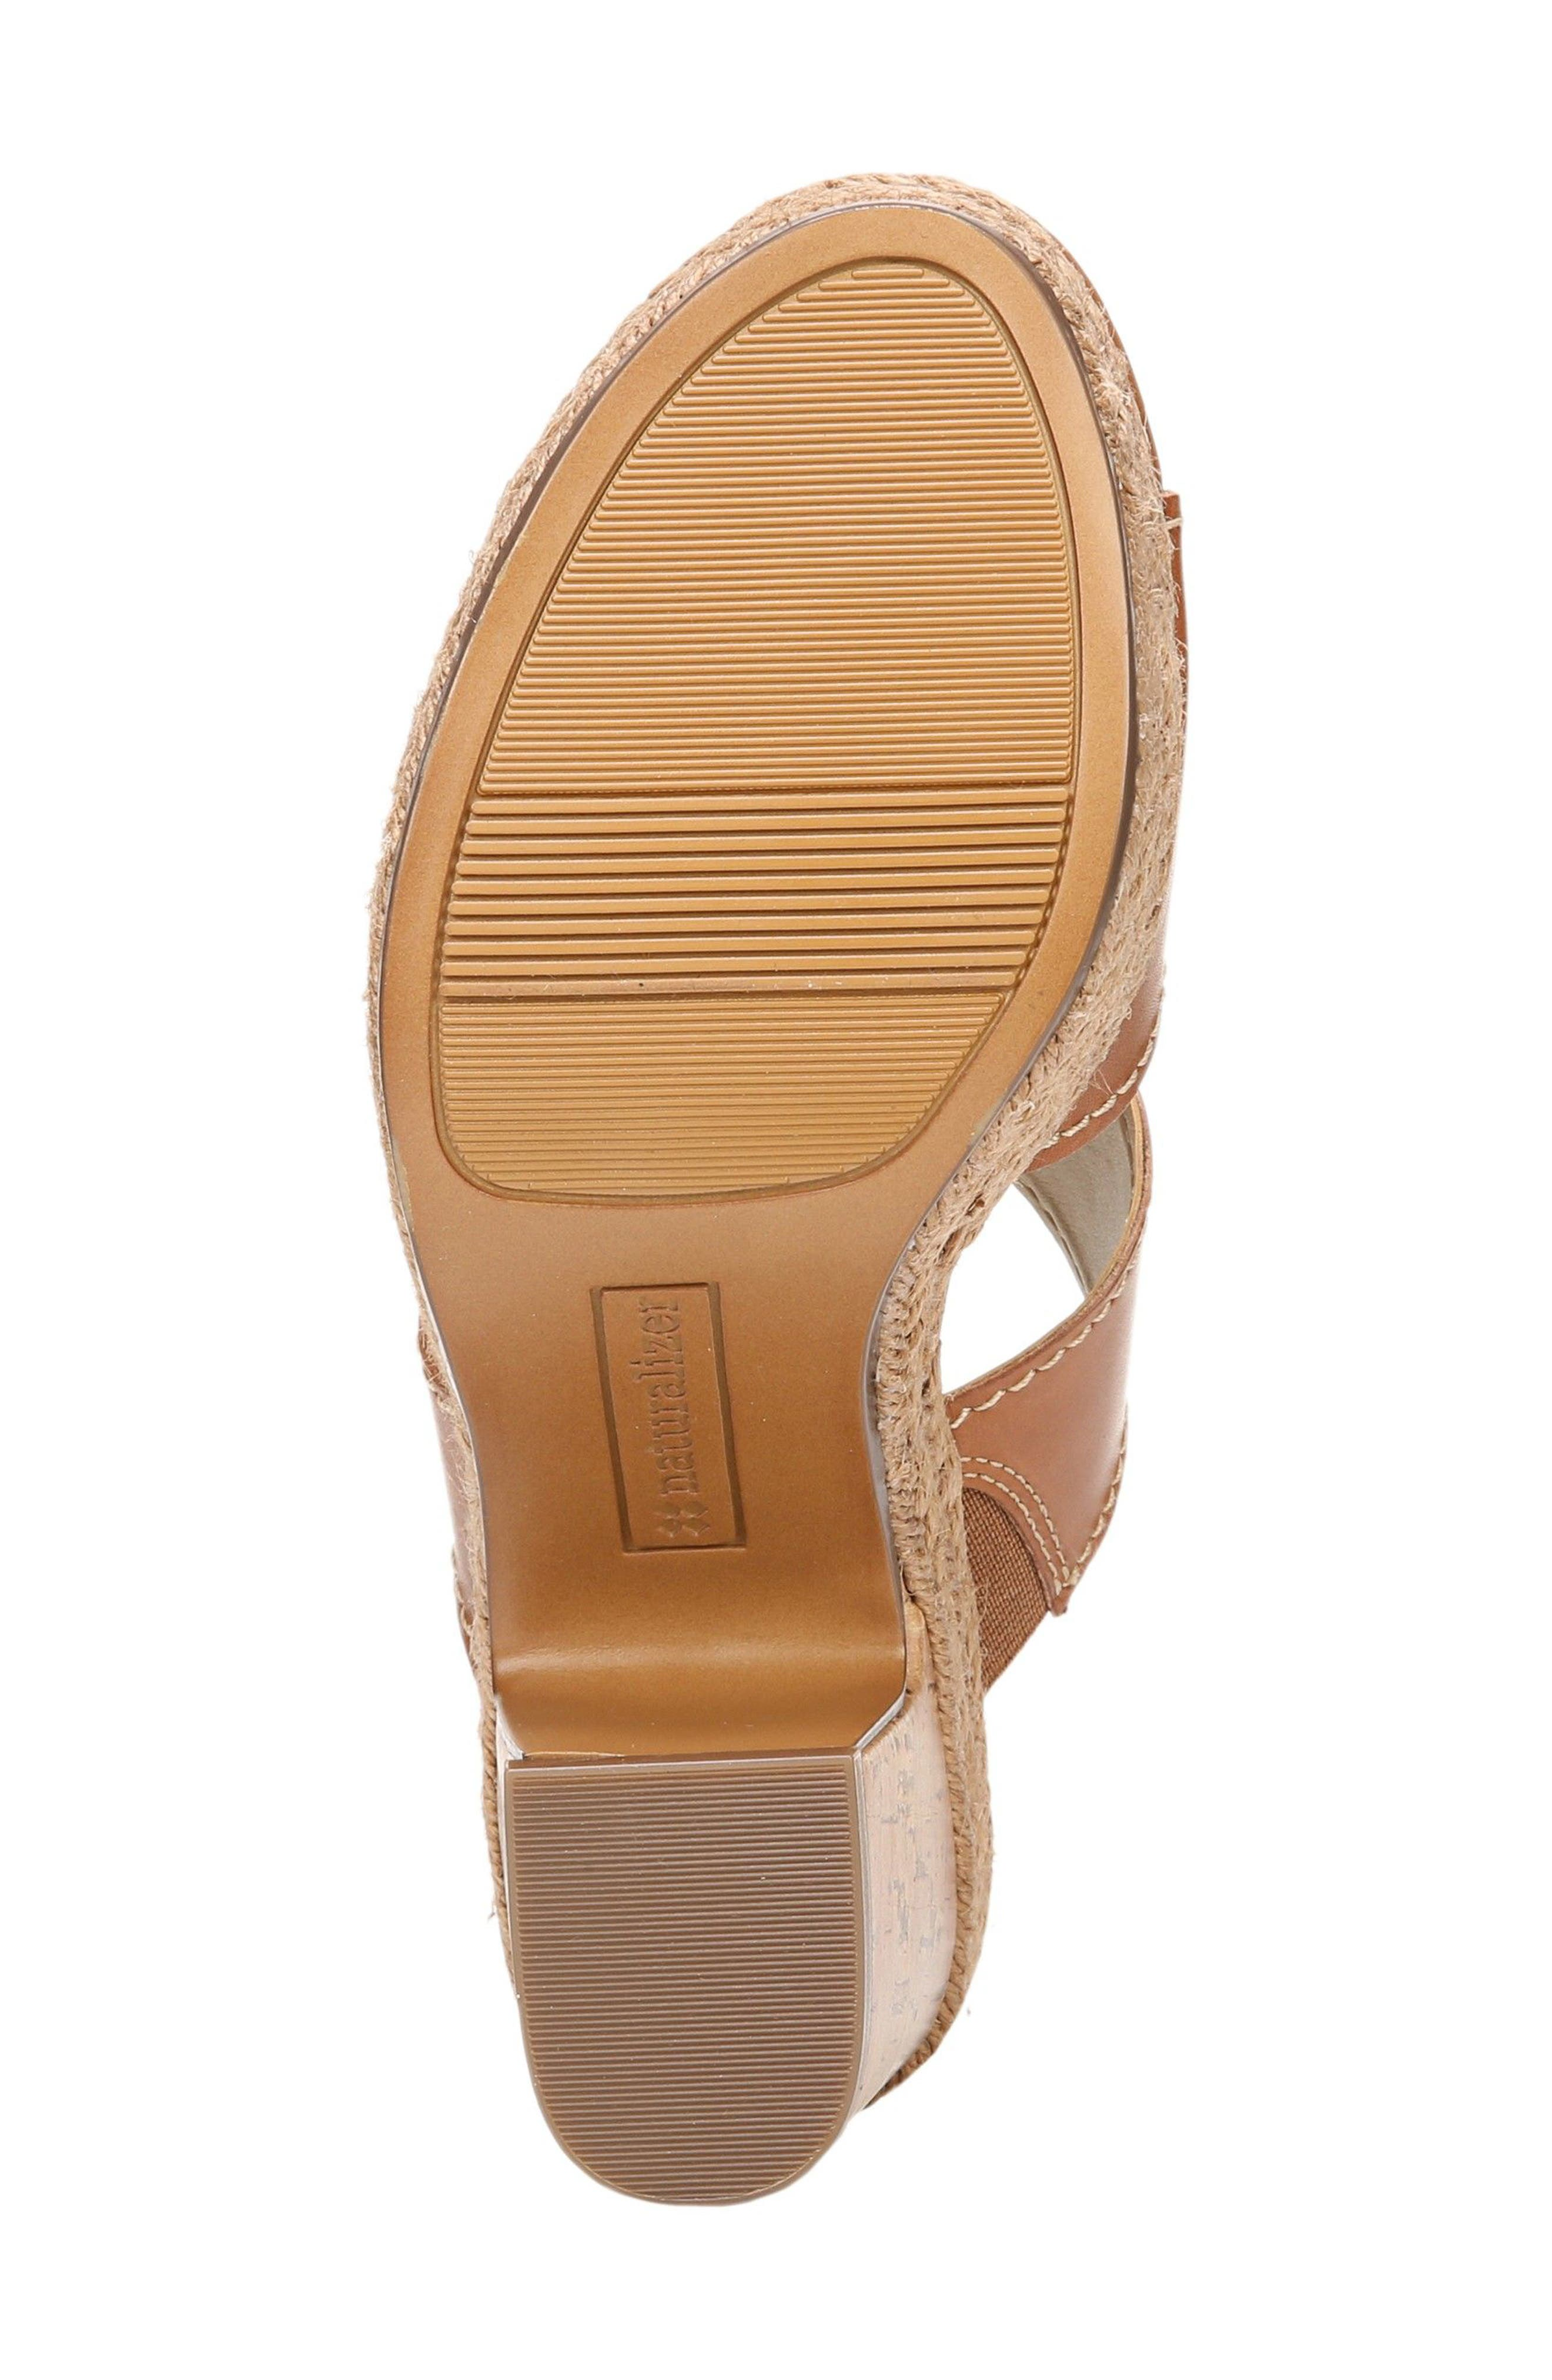 Evette Sandal,                             Alternate thumbnail 4, color,                             200